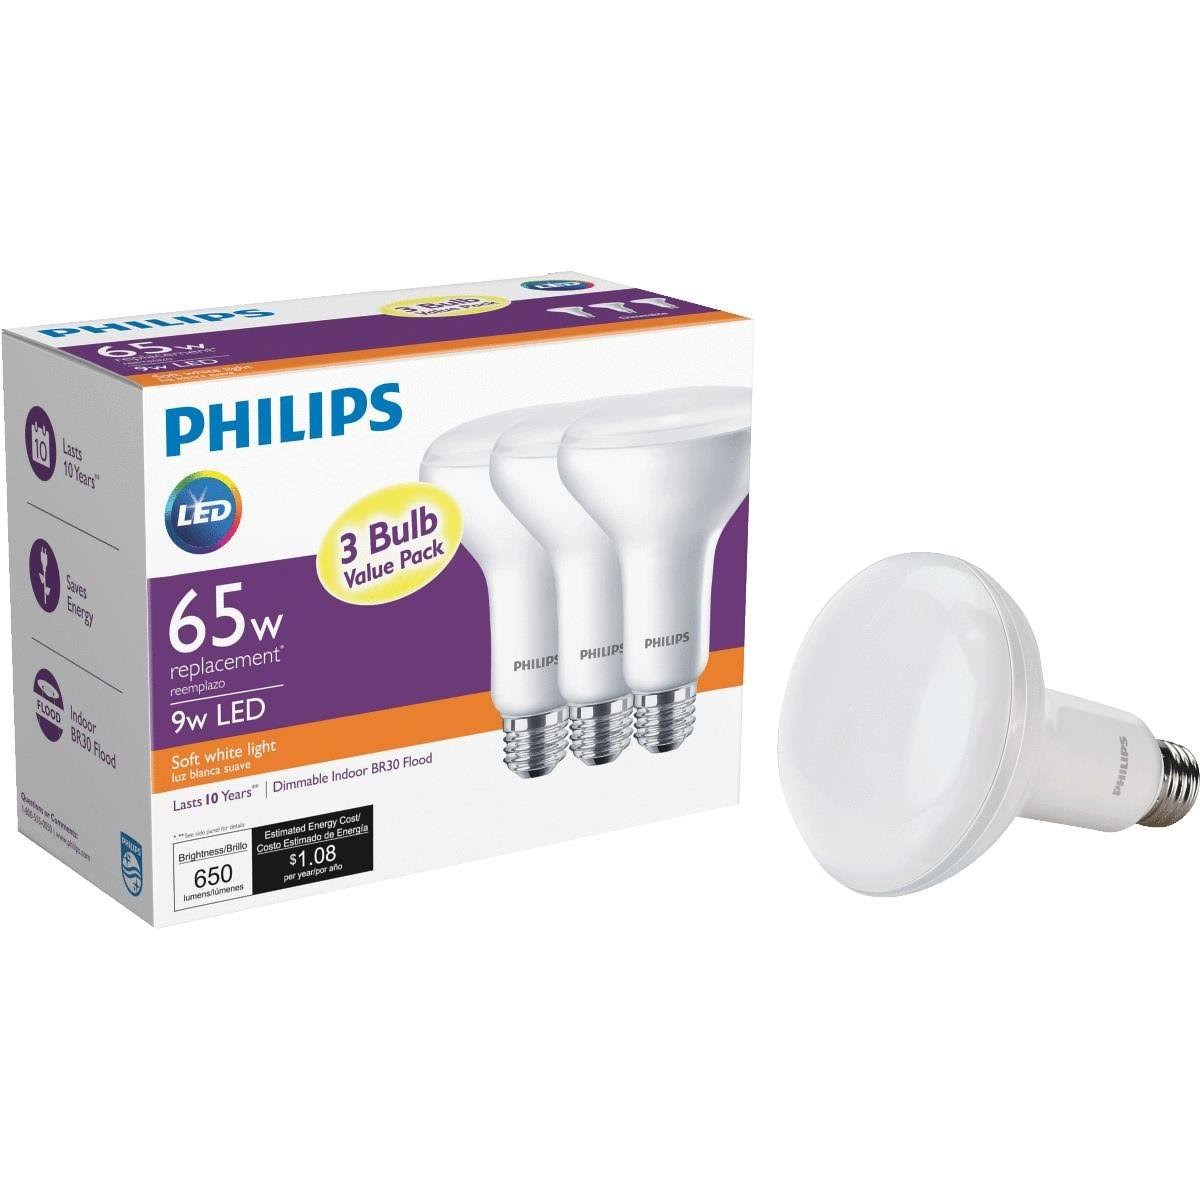 Philips Lighting BR30 Dimmable LED Floodlight Light Bulb - Soft White, 3 Pack